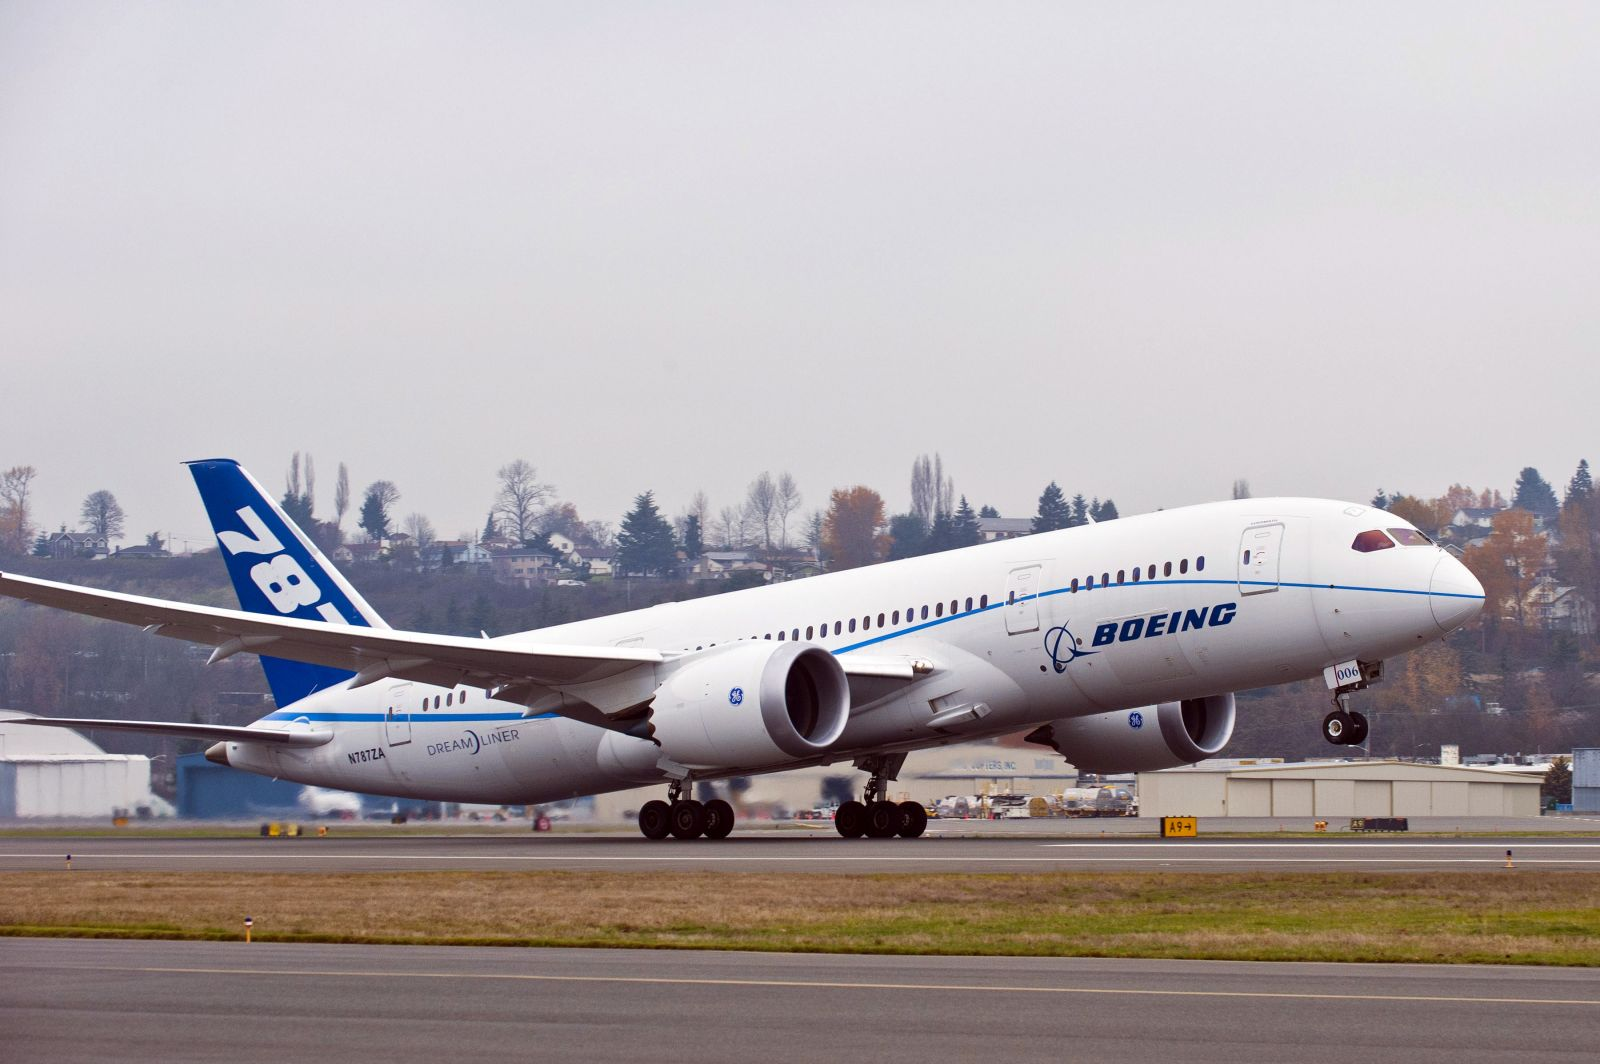 Boeing, Embraer open aviation biofuel research center in Brazil